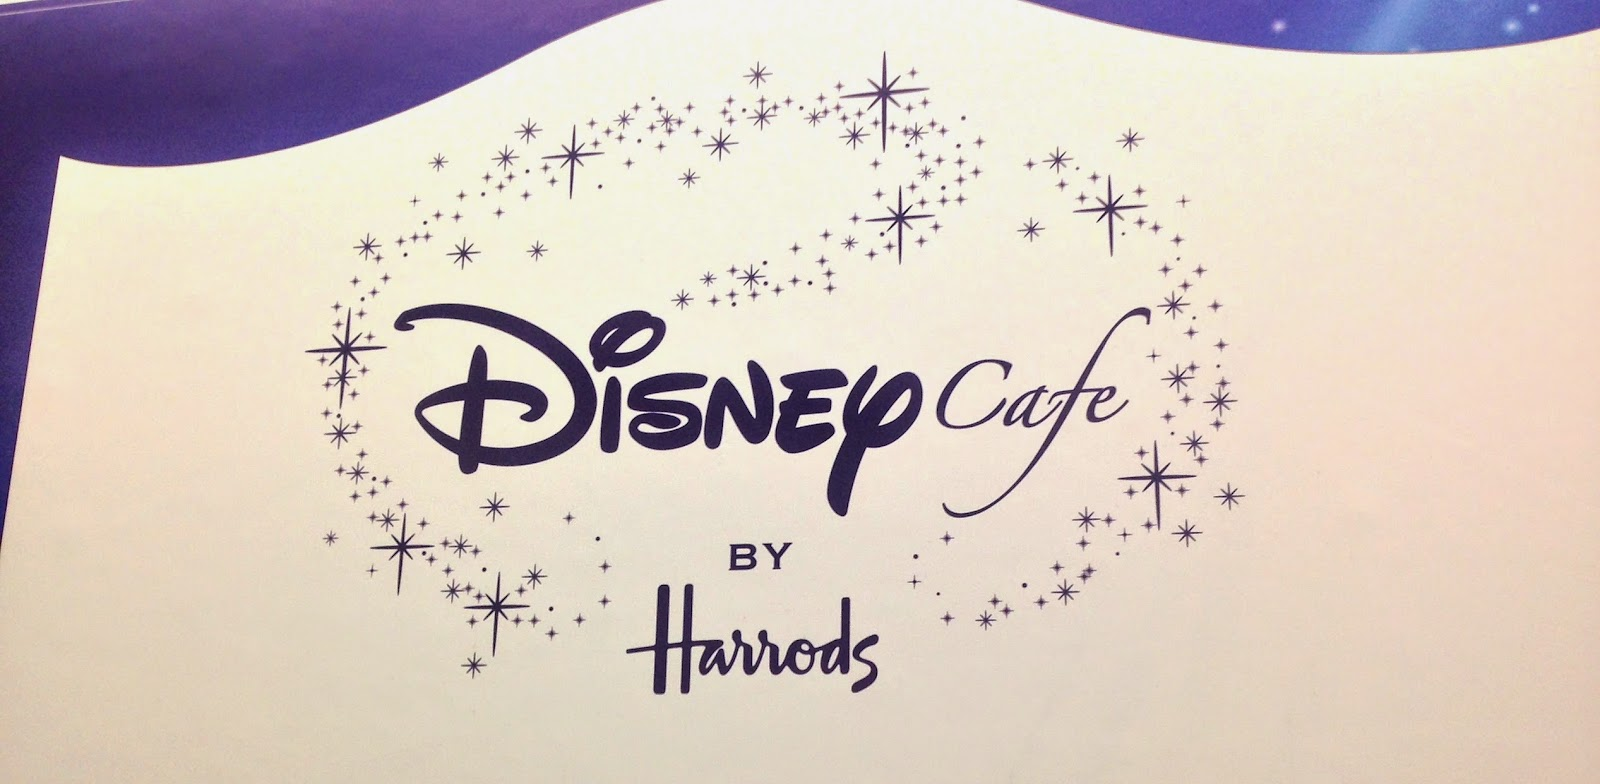 Disney Cafe Harrods